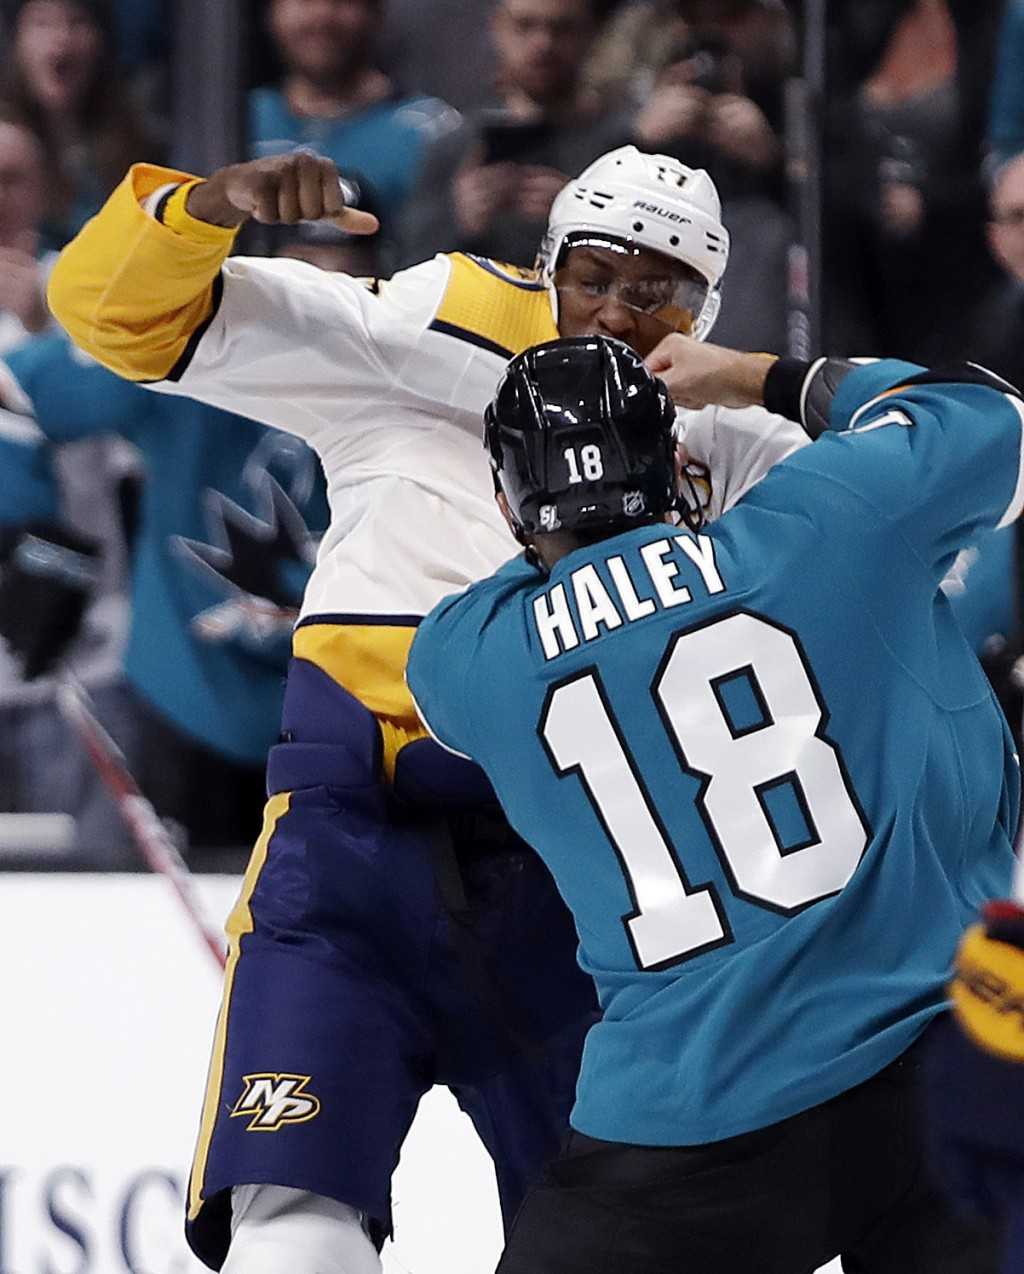 Nashville Predators' Wayne Simmonds, left, and San Jose Sharks' Micheal Haley (18) fight during the first period of an NHL hockey game Saturday, March